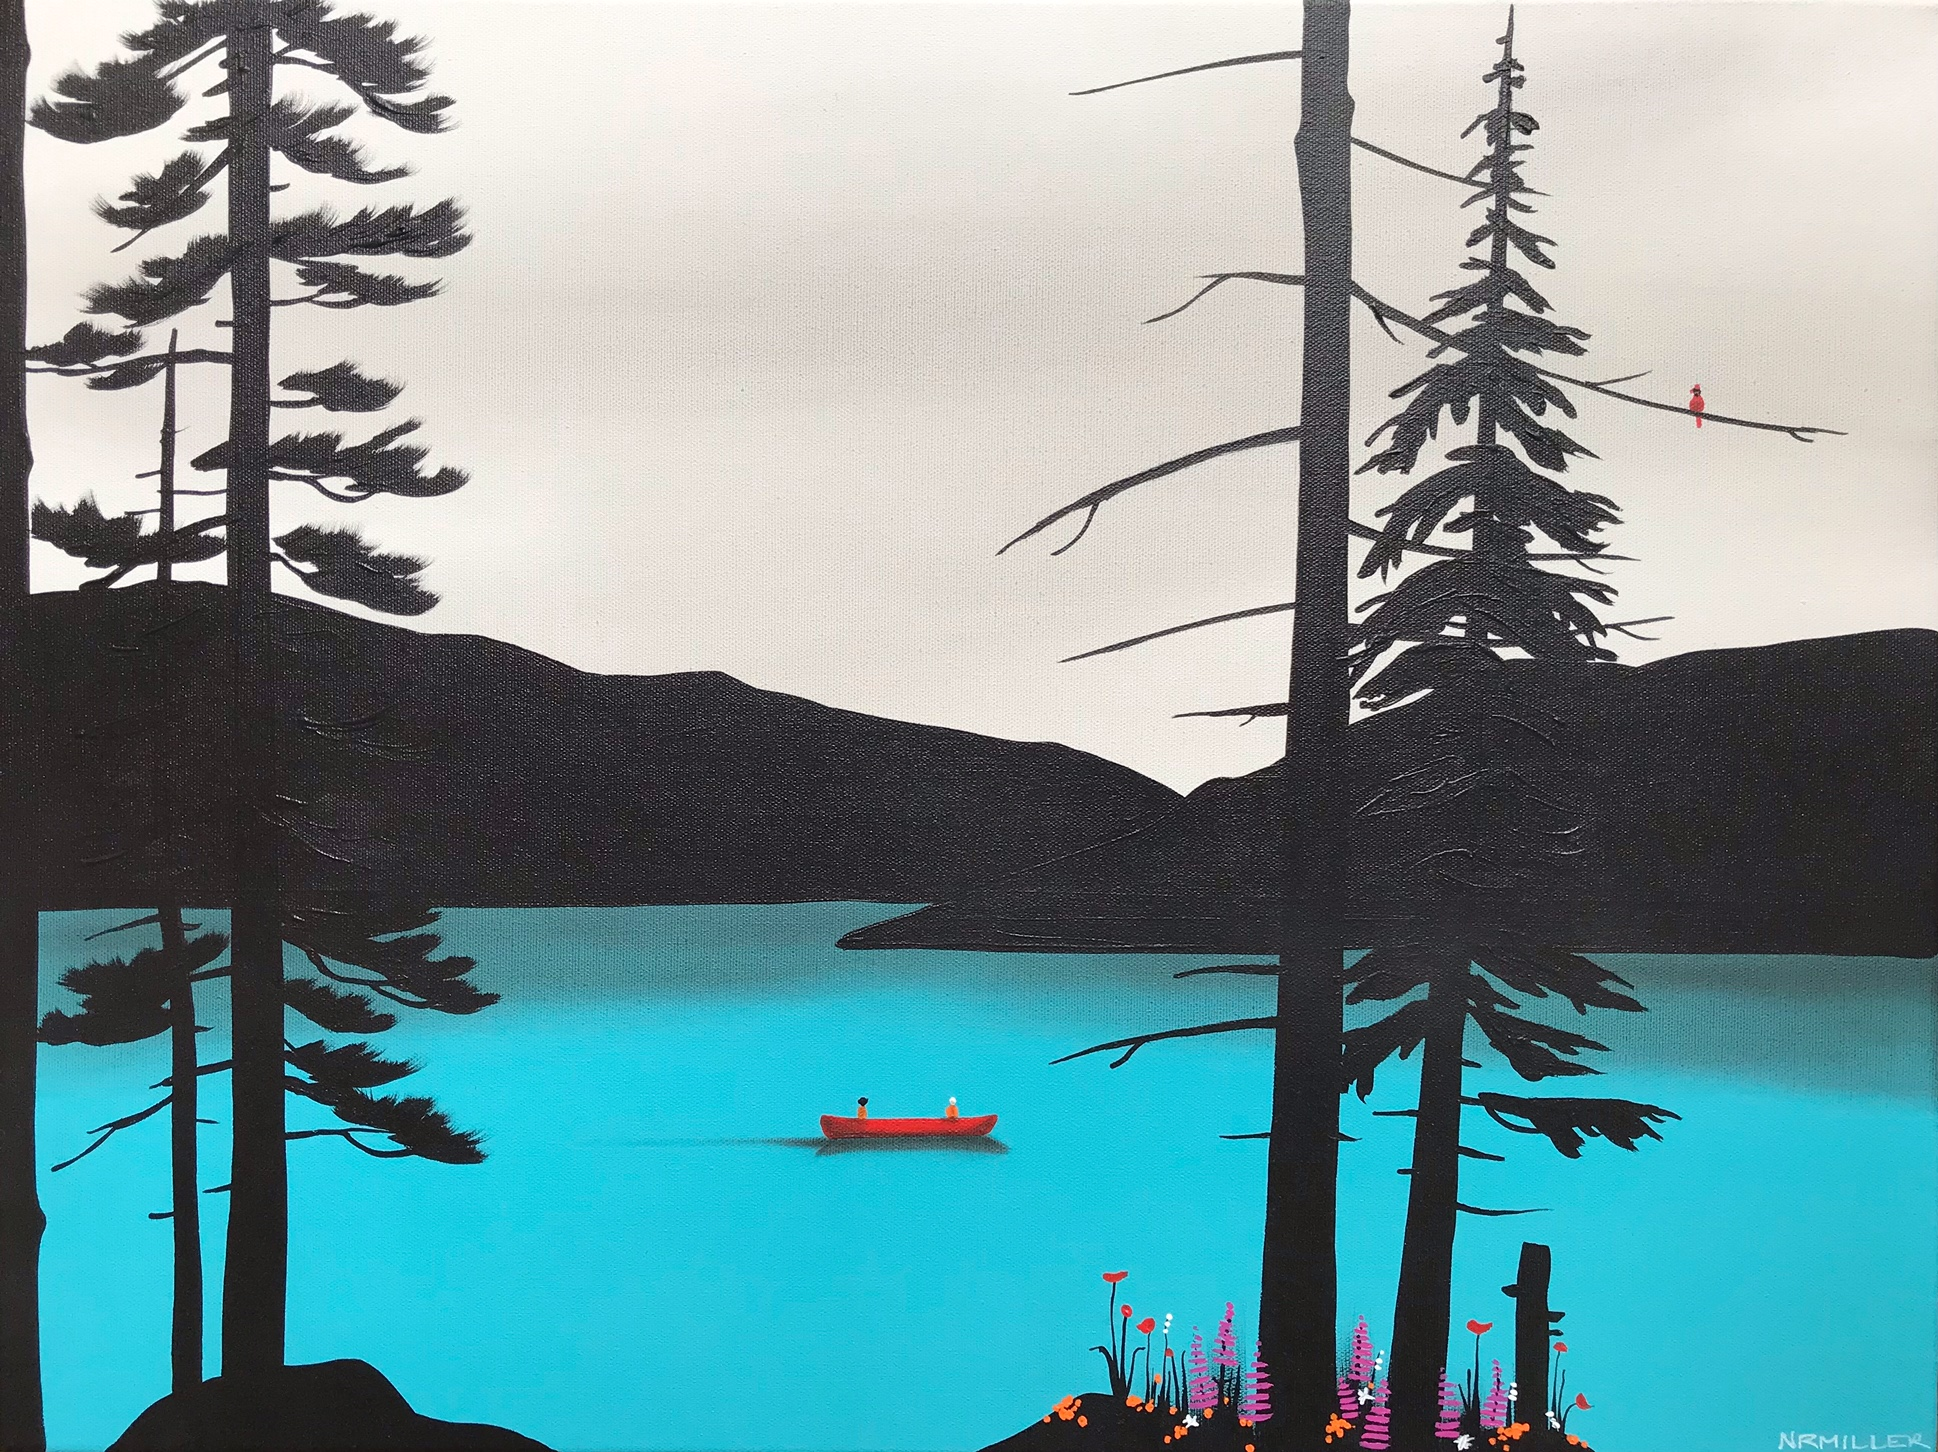 Wallowing Wildflower, mixed media landscape painting by Natasha Miller | Effusion Art Gallery + Glass Studio, Invermere BC